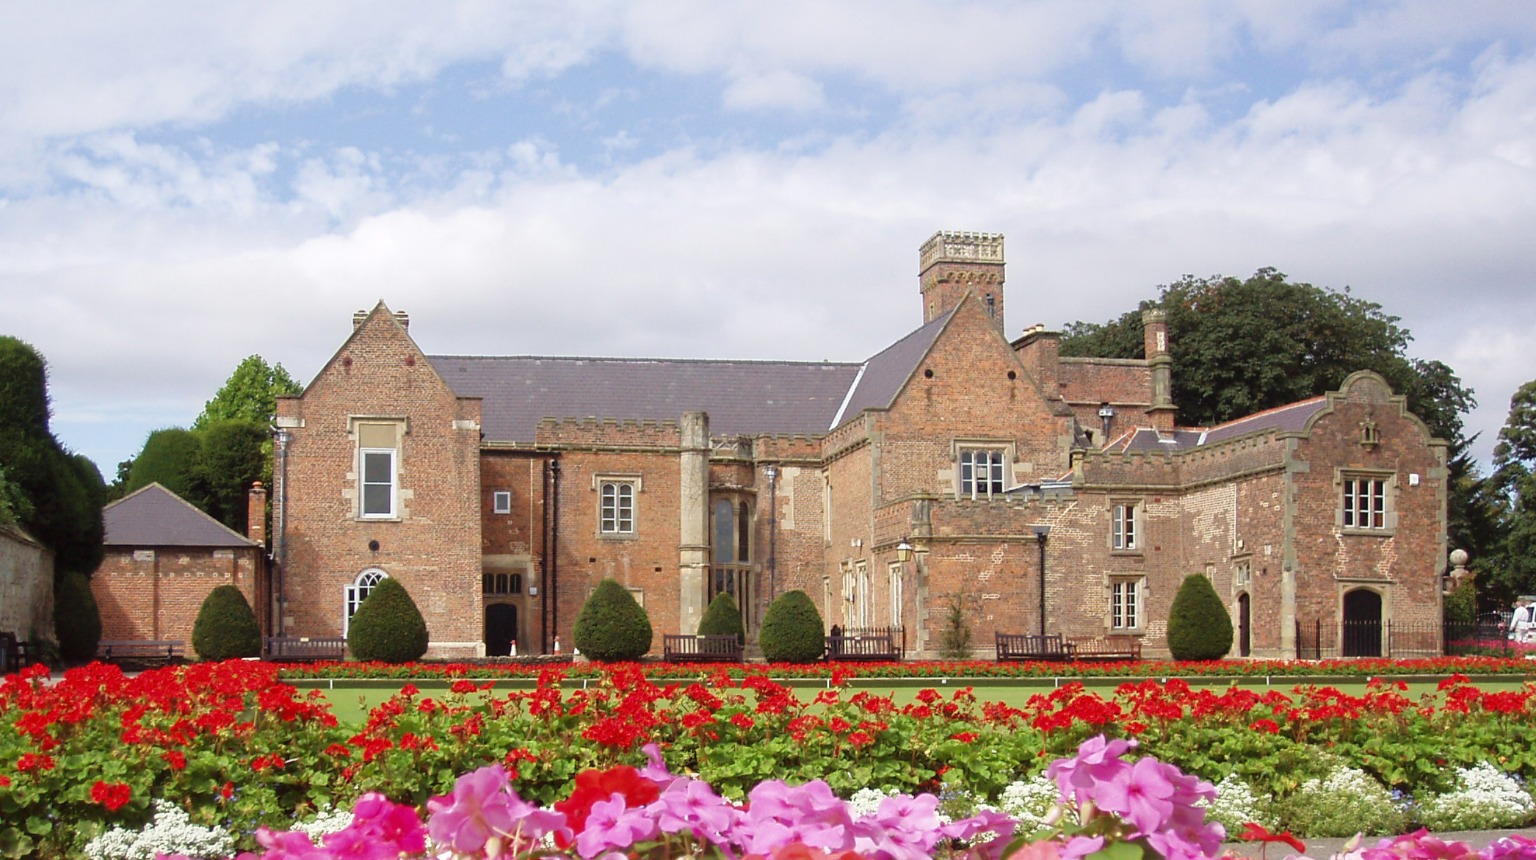 Ayscoughfee Hall Museum, Rear elevation of Ayscoughfee Hall, © South Holland District Council